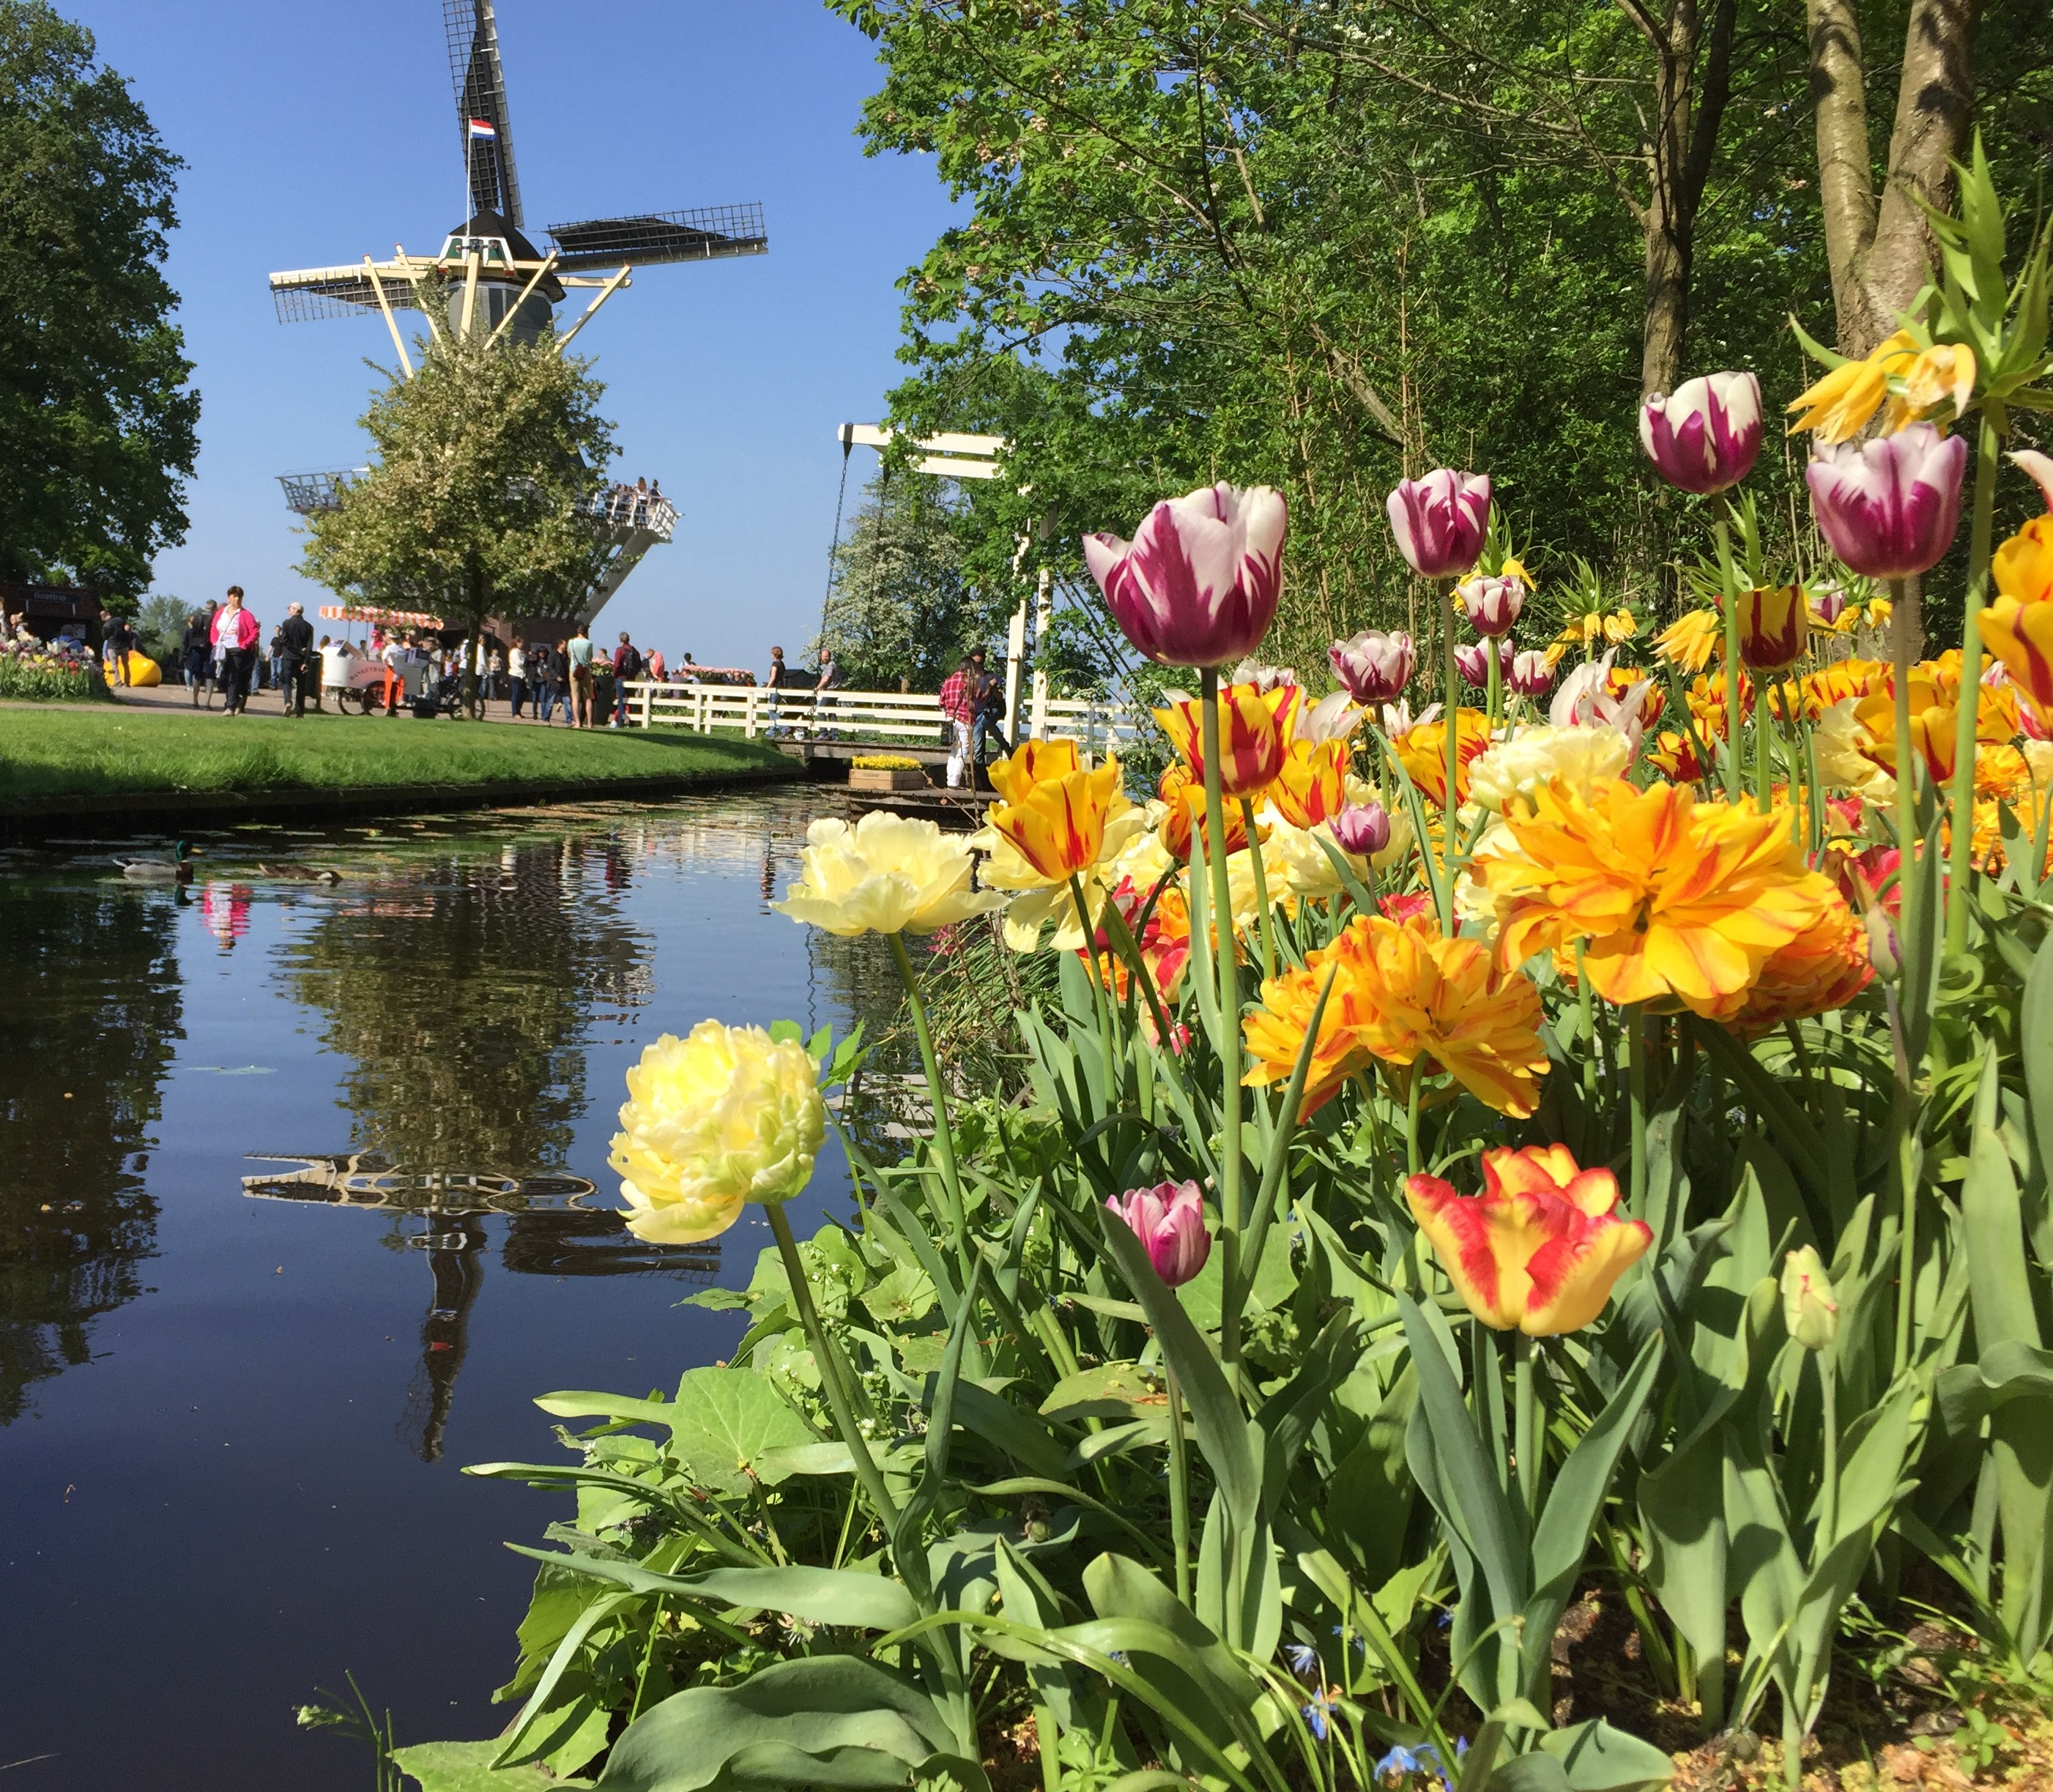 Tulips and Windmill by water